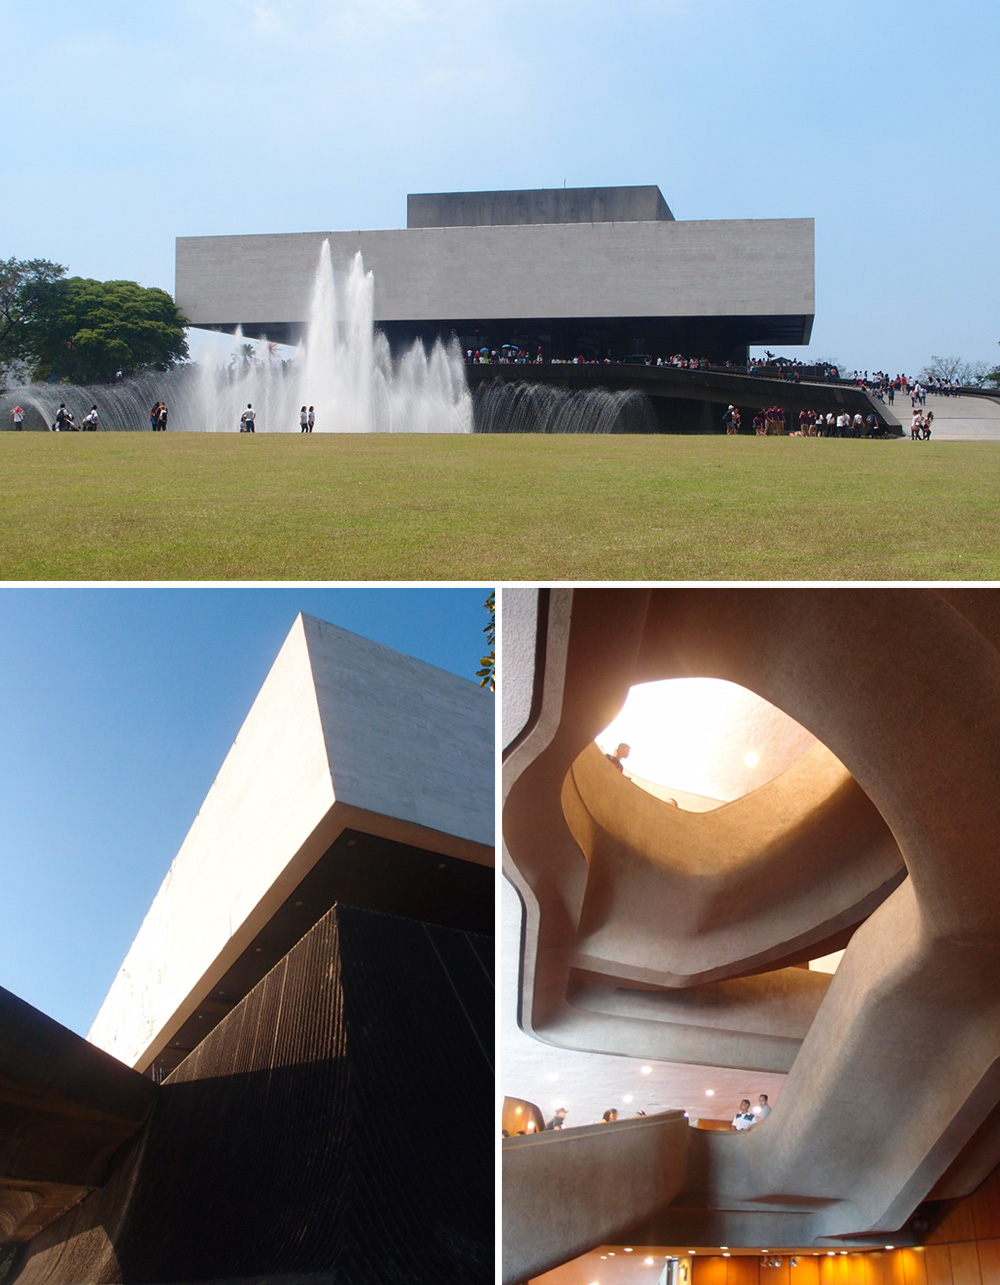 cultural pambansa philippines ccp center tanghalang wikipedia collage national philippine manila architecture artist landmark twenty things important cc credit meets